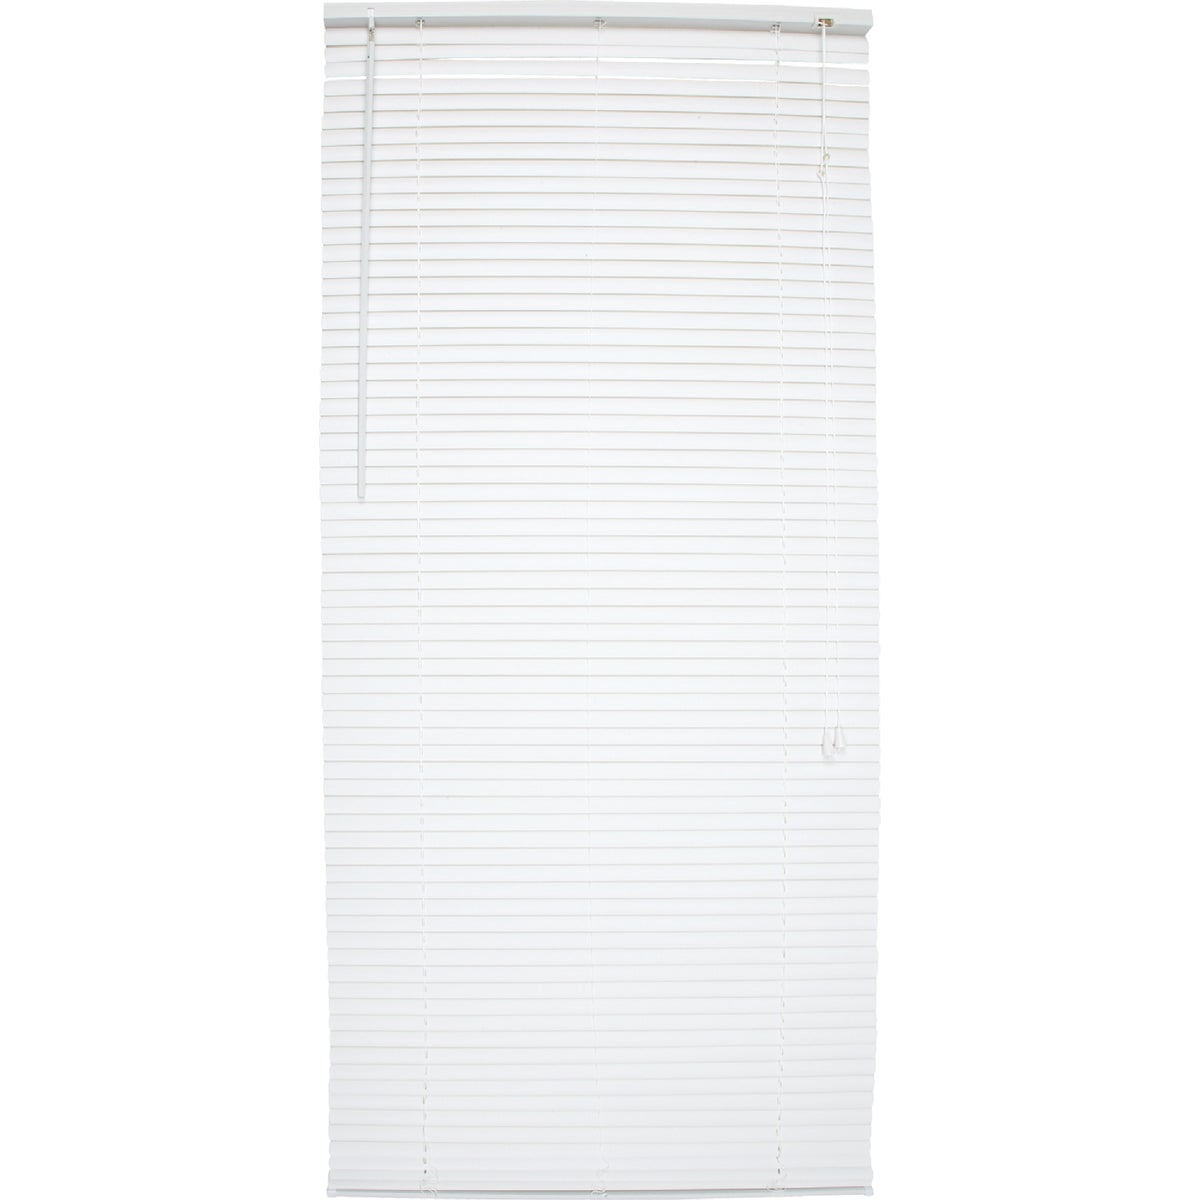 19X64 WHITE MINI BLIND - 614785 by Lotus Wind Incom